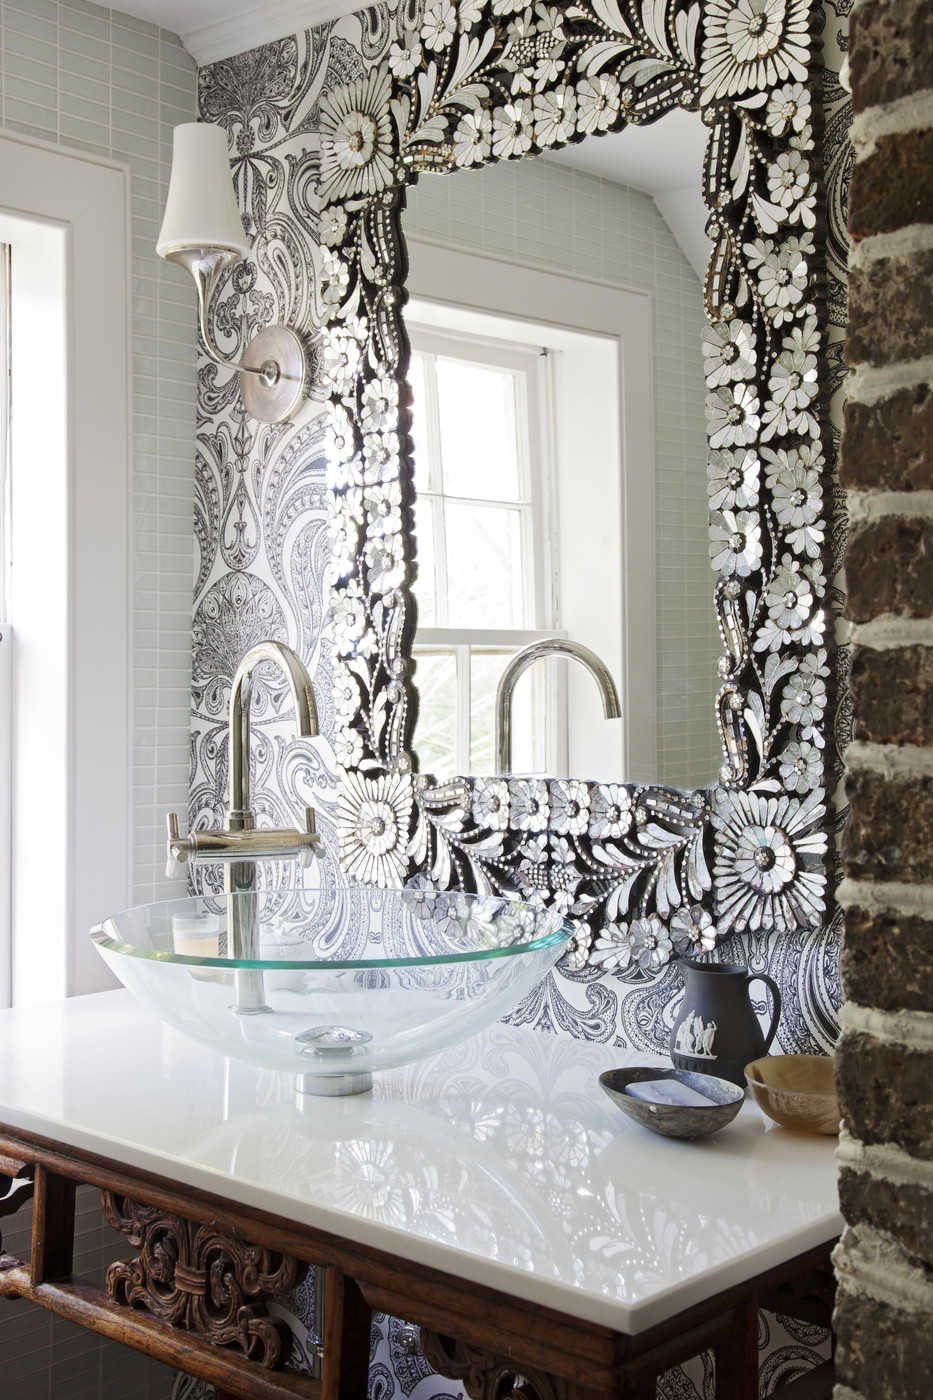 sea shell mirror silver rustic farmhouse vanity bathroom sink idea inspiration brick wall georgian traditional decor house shop room ideas clear sink